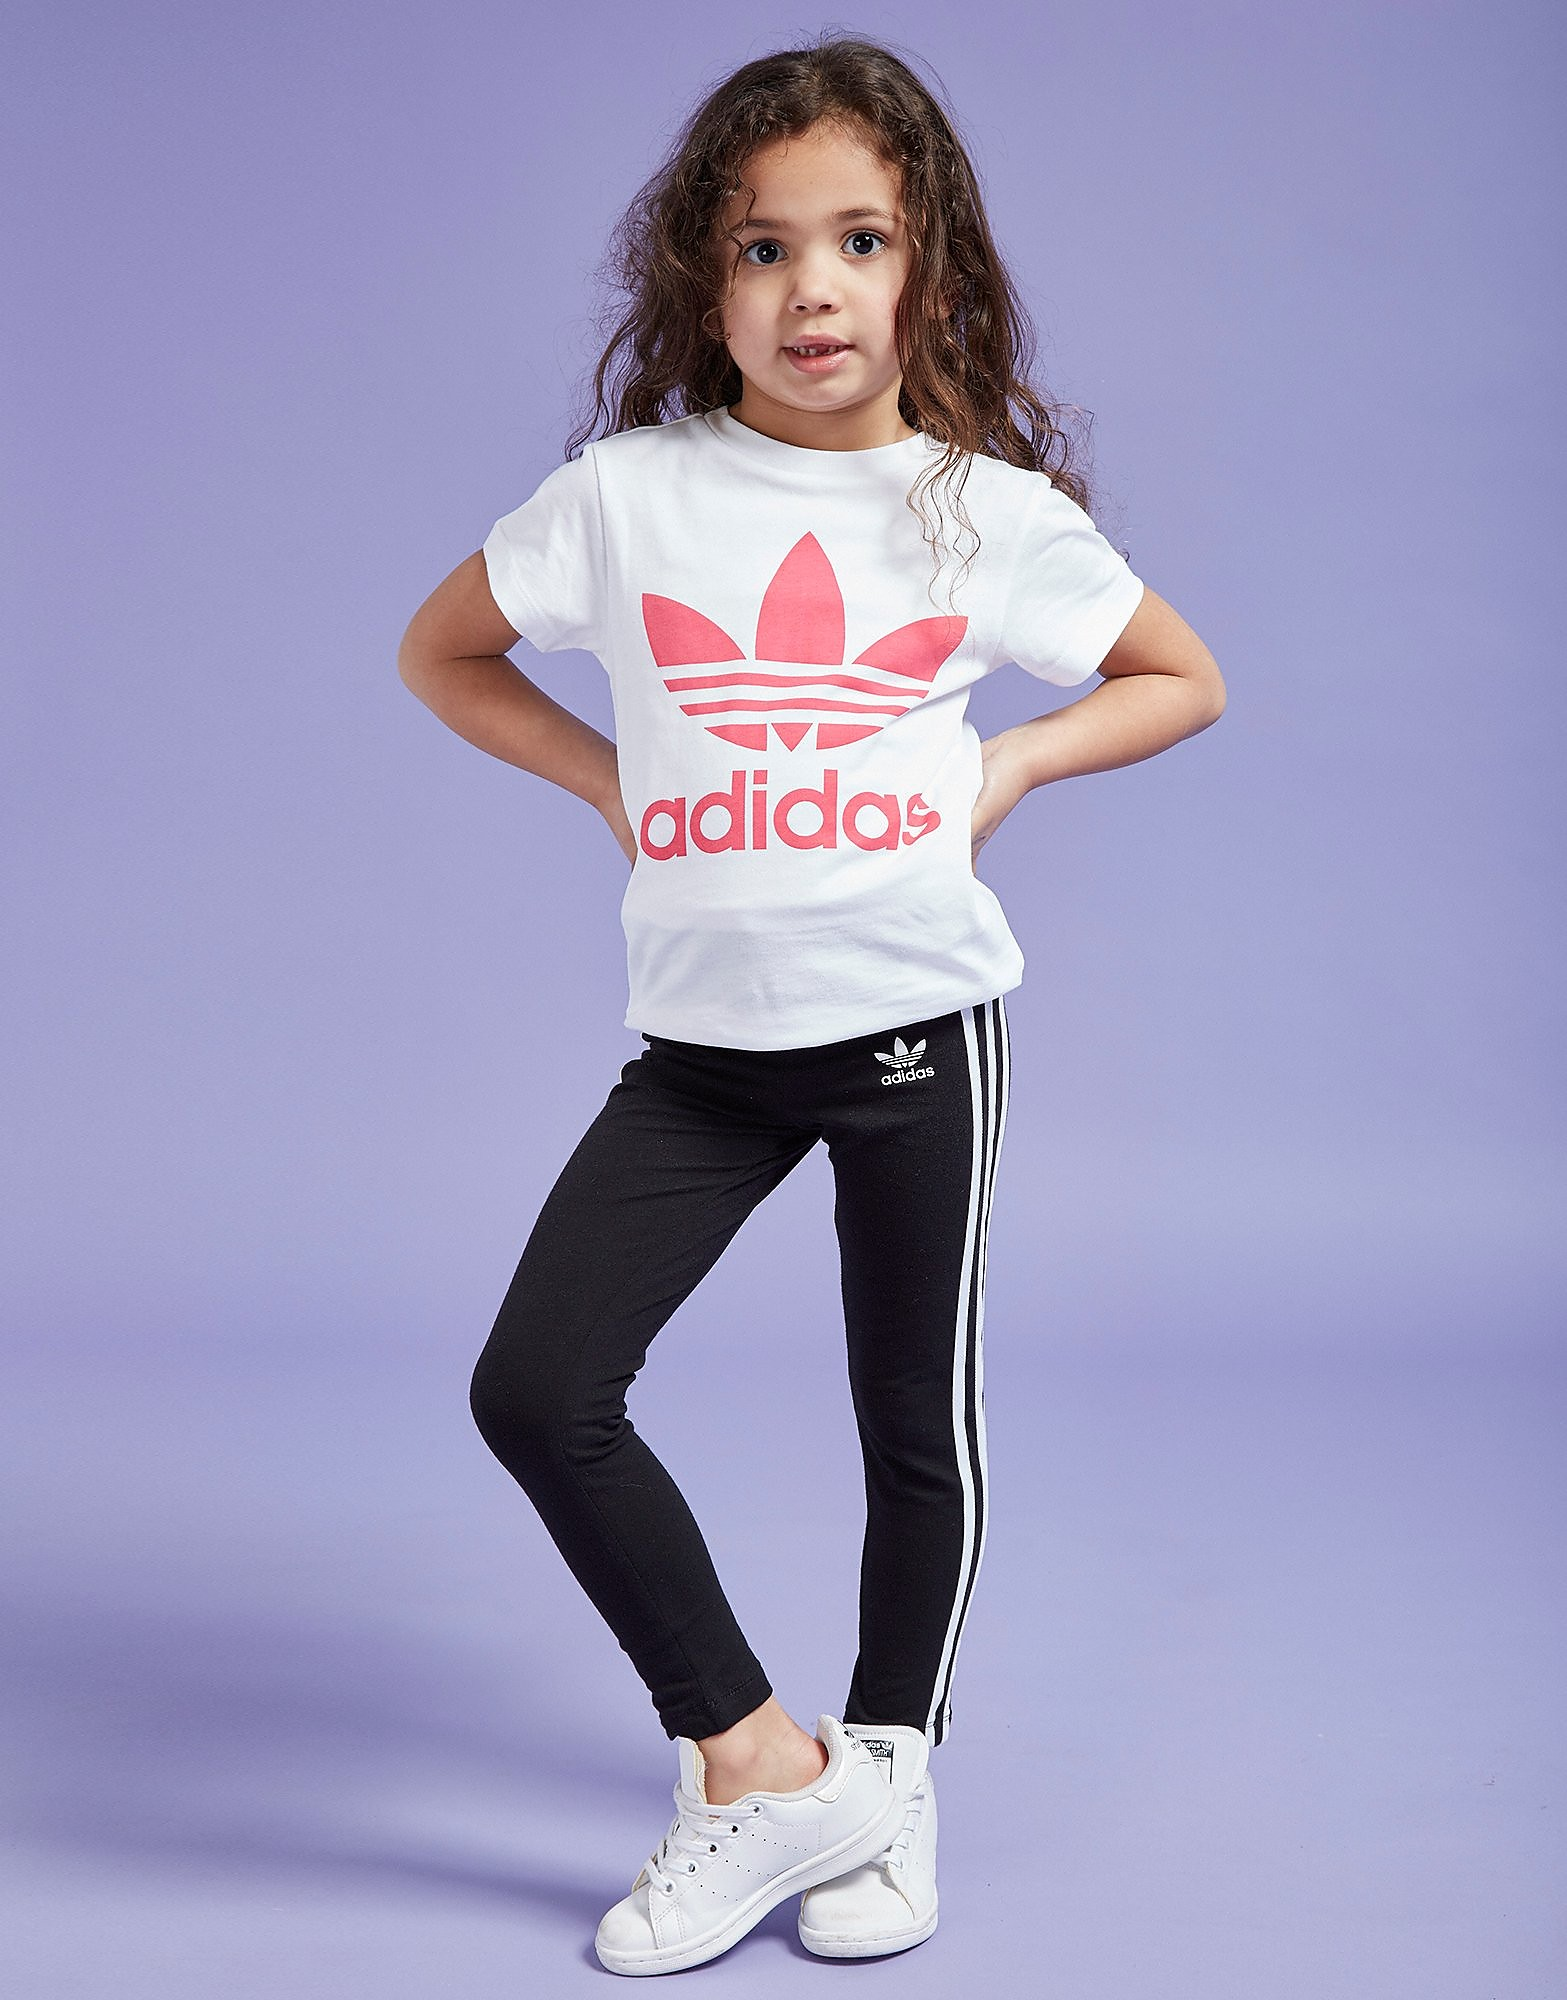 adidas Originals Legging Girls' 3- Stripes Enfant